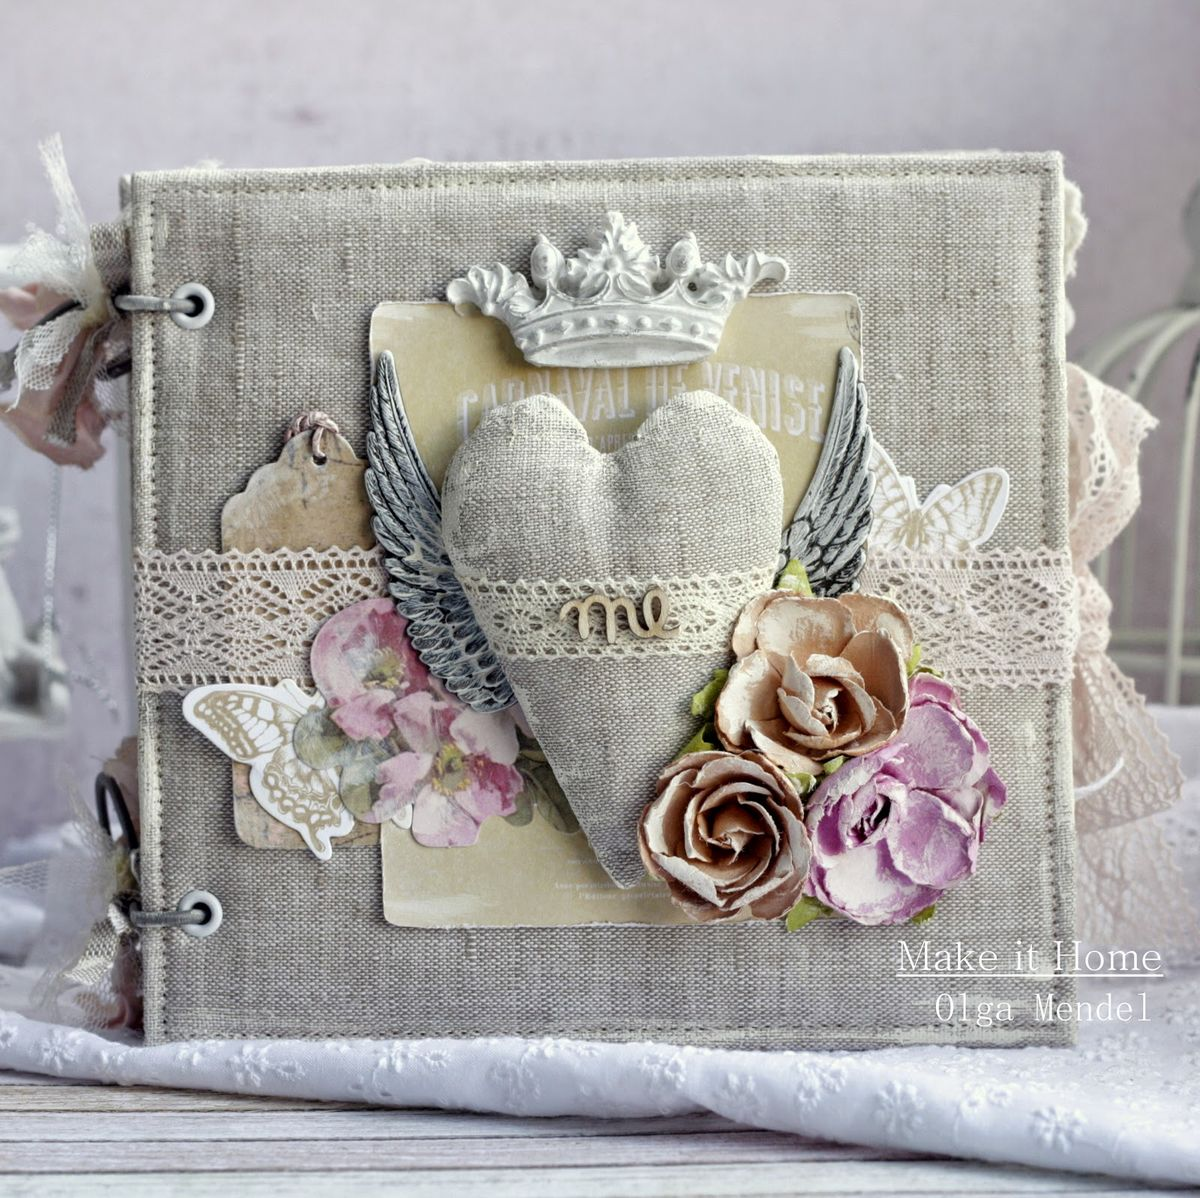 Locketts-Hungerford - Handmade Personalised Photo Albums Make handmade photo albums home